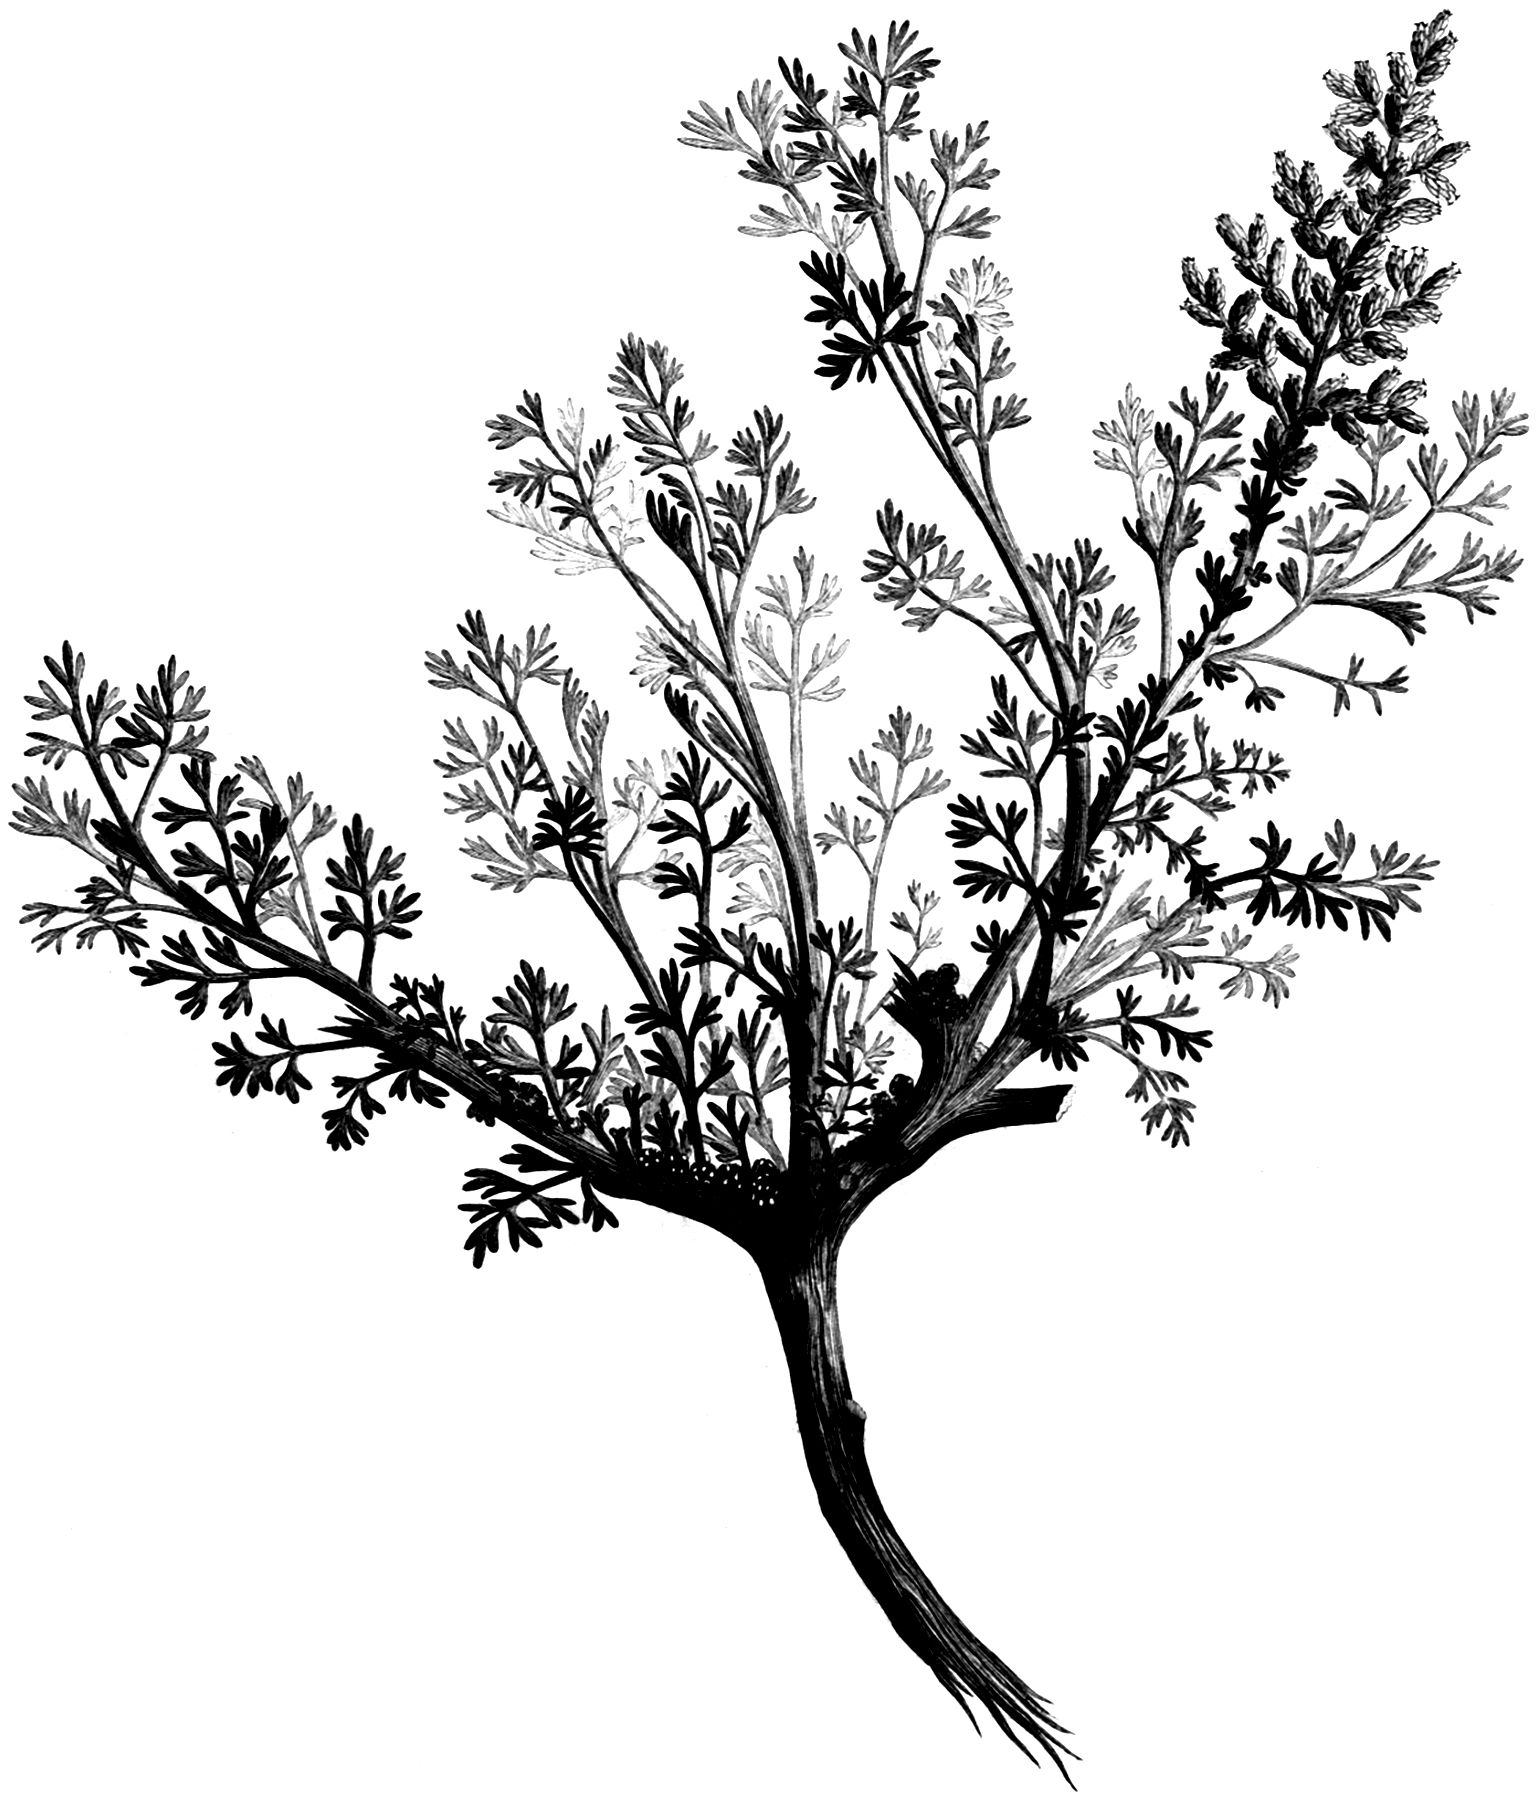 Black and white subtle tree patterns clipart clip art transparent download Pin by Trina Colson on Print   Black, white tree, Clipart black ... clip art transparent download